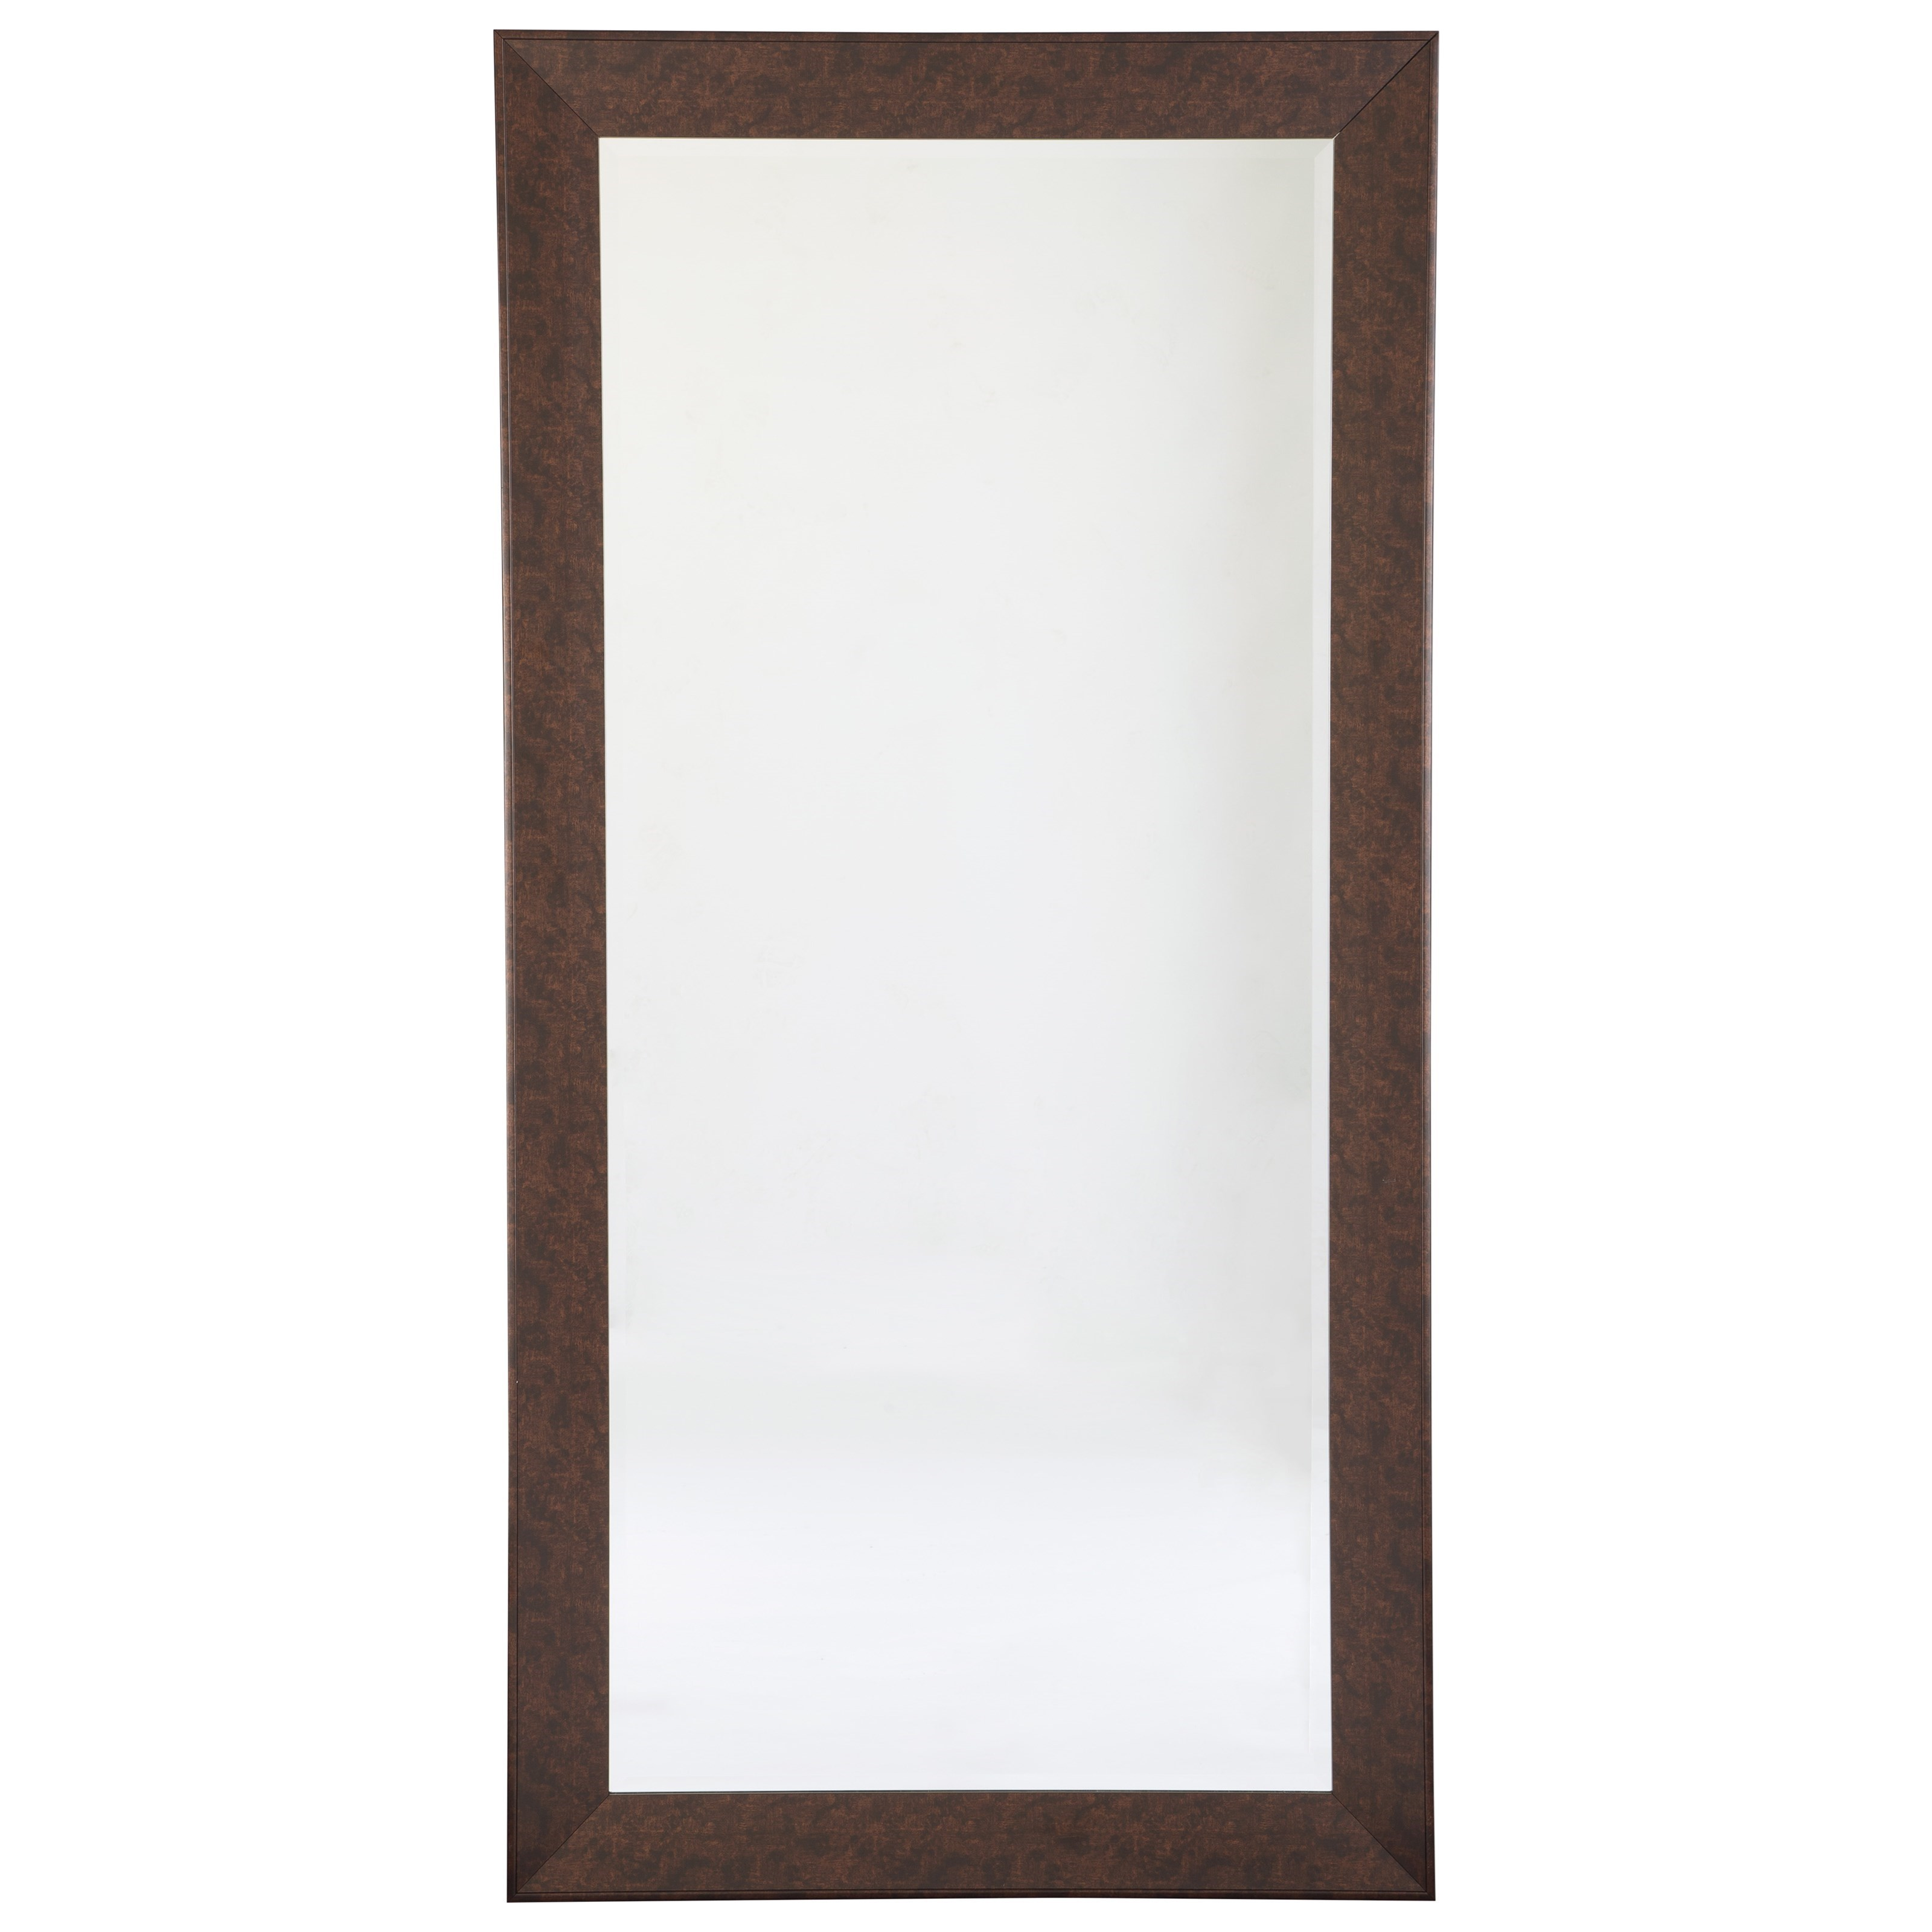 Accent Mirrors Duha Brown Accent Mirror by Signature Design by Ashley at Suburban Furniture